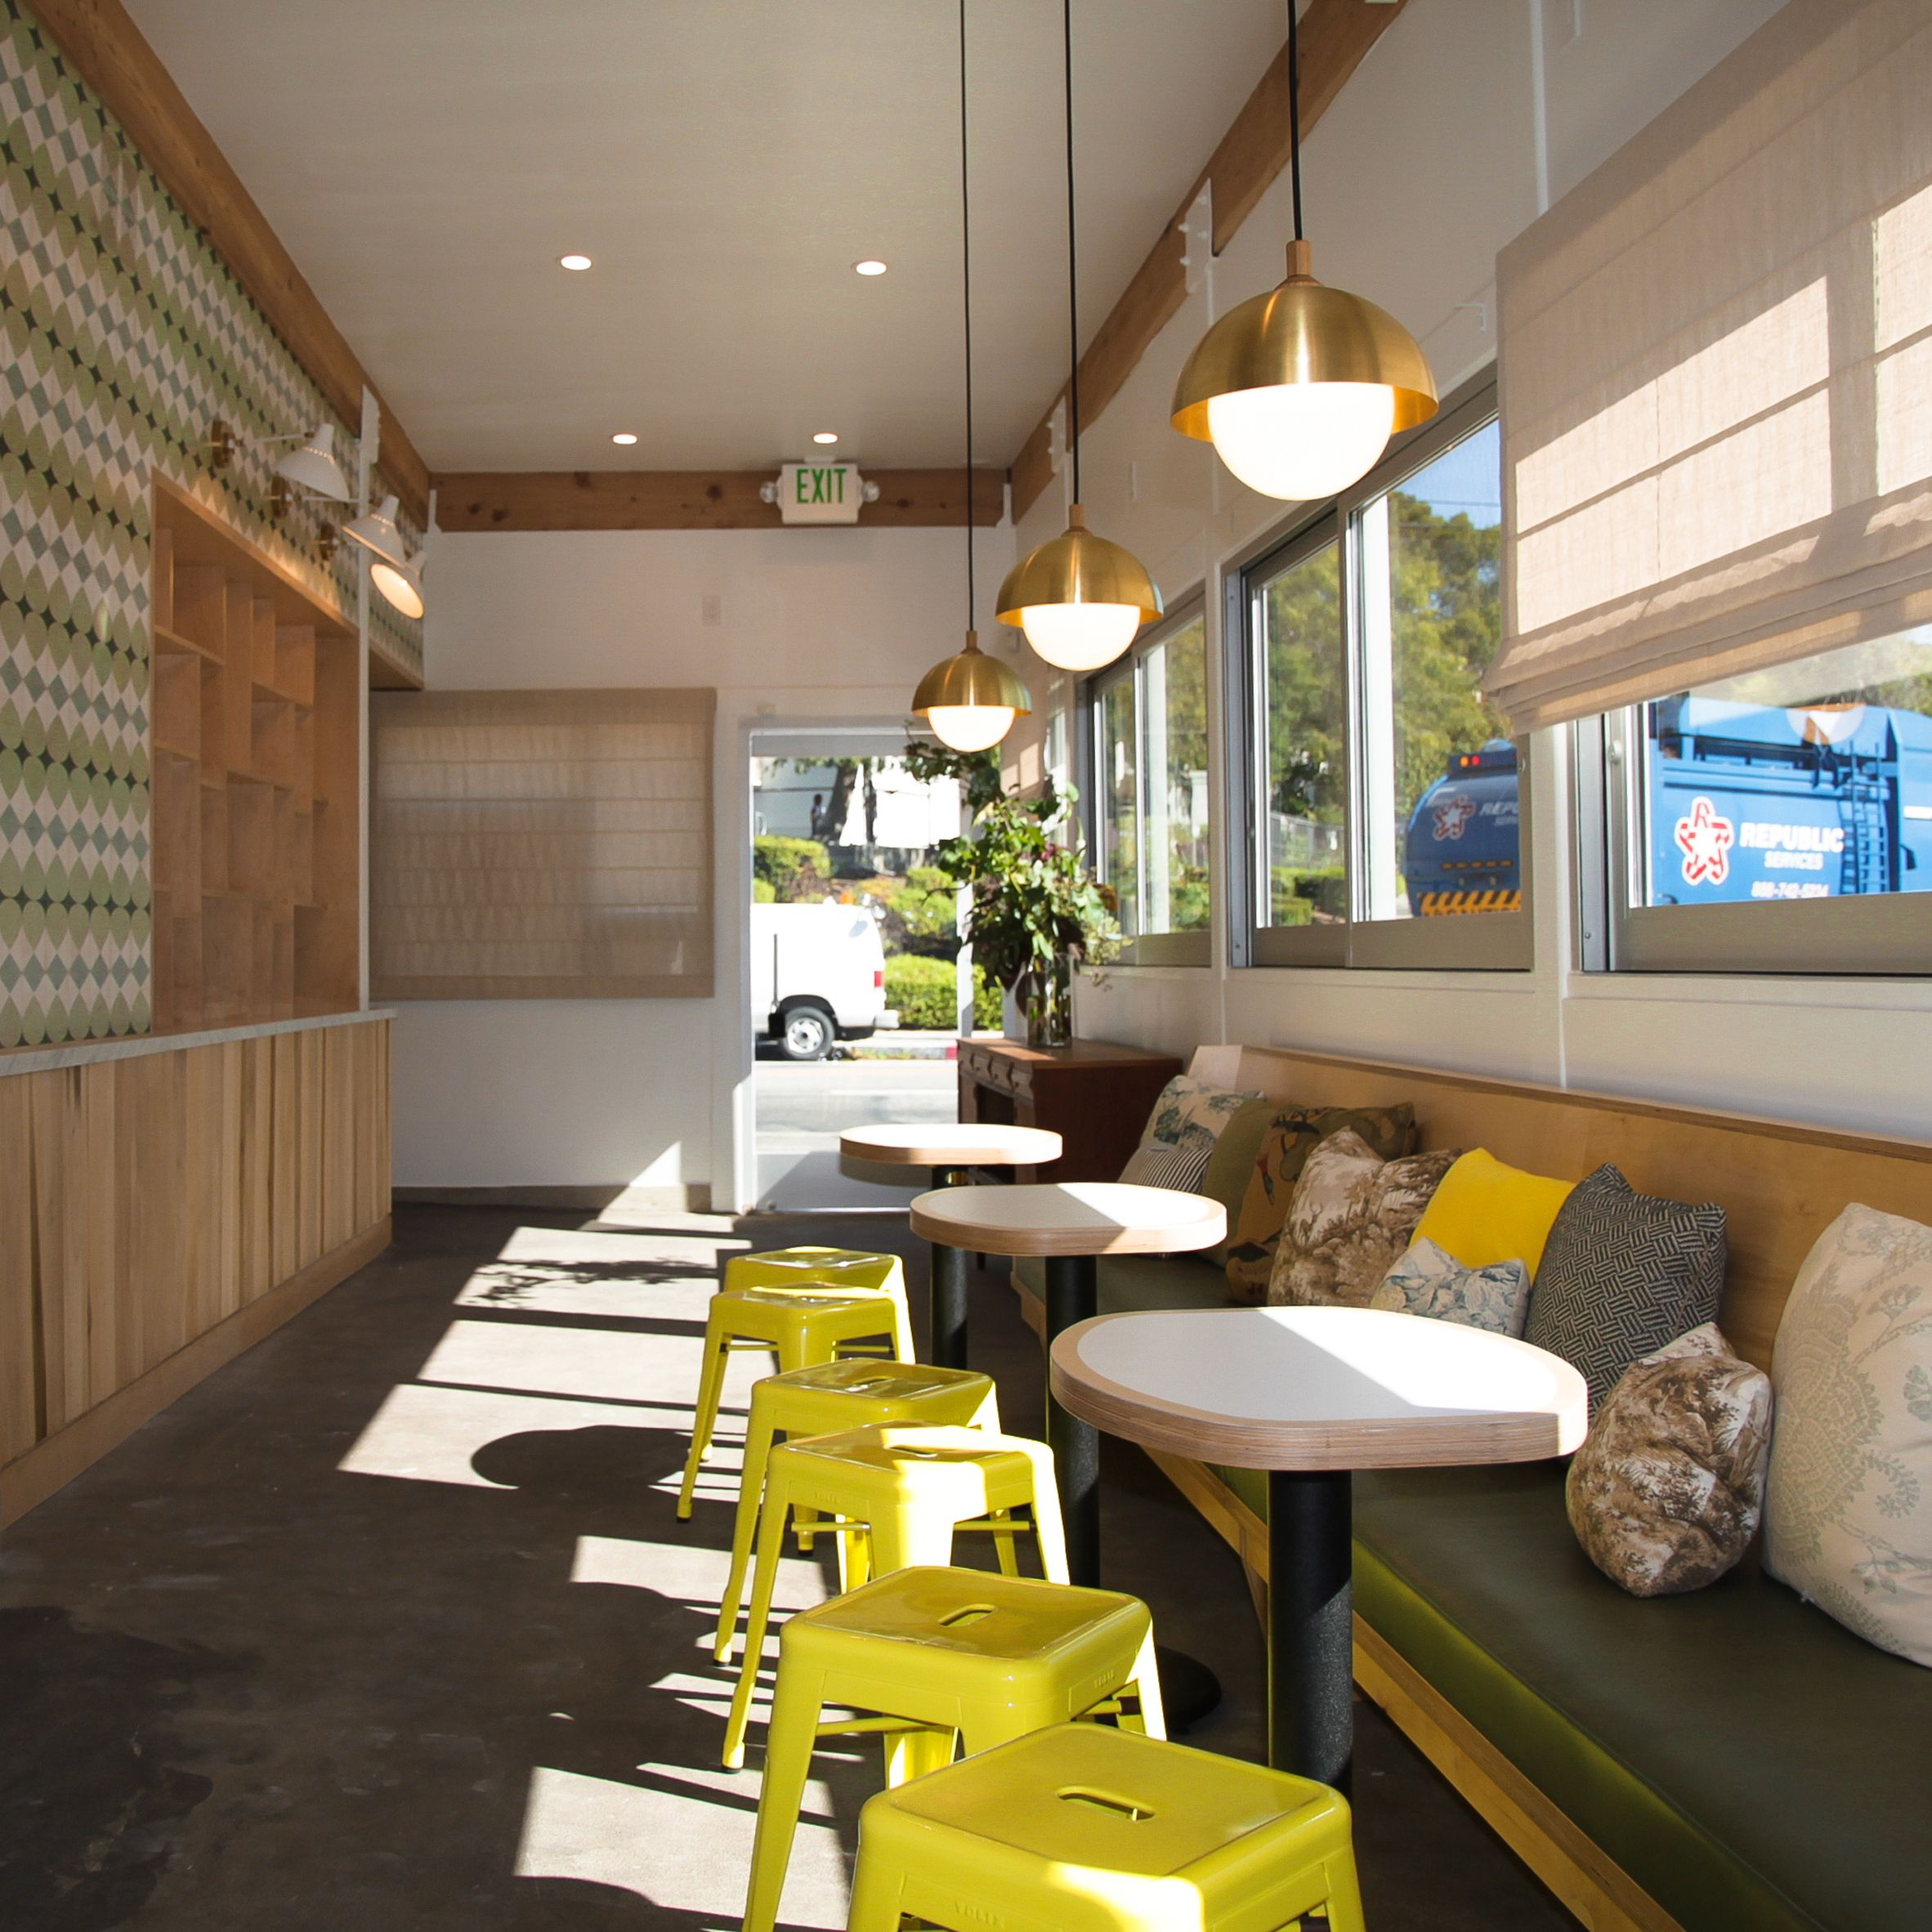 This cafe owned by Moby in Los Angeles was designed by local firm